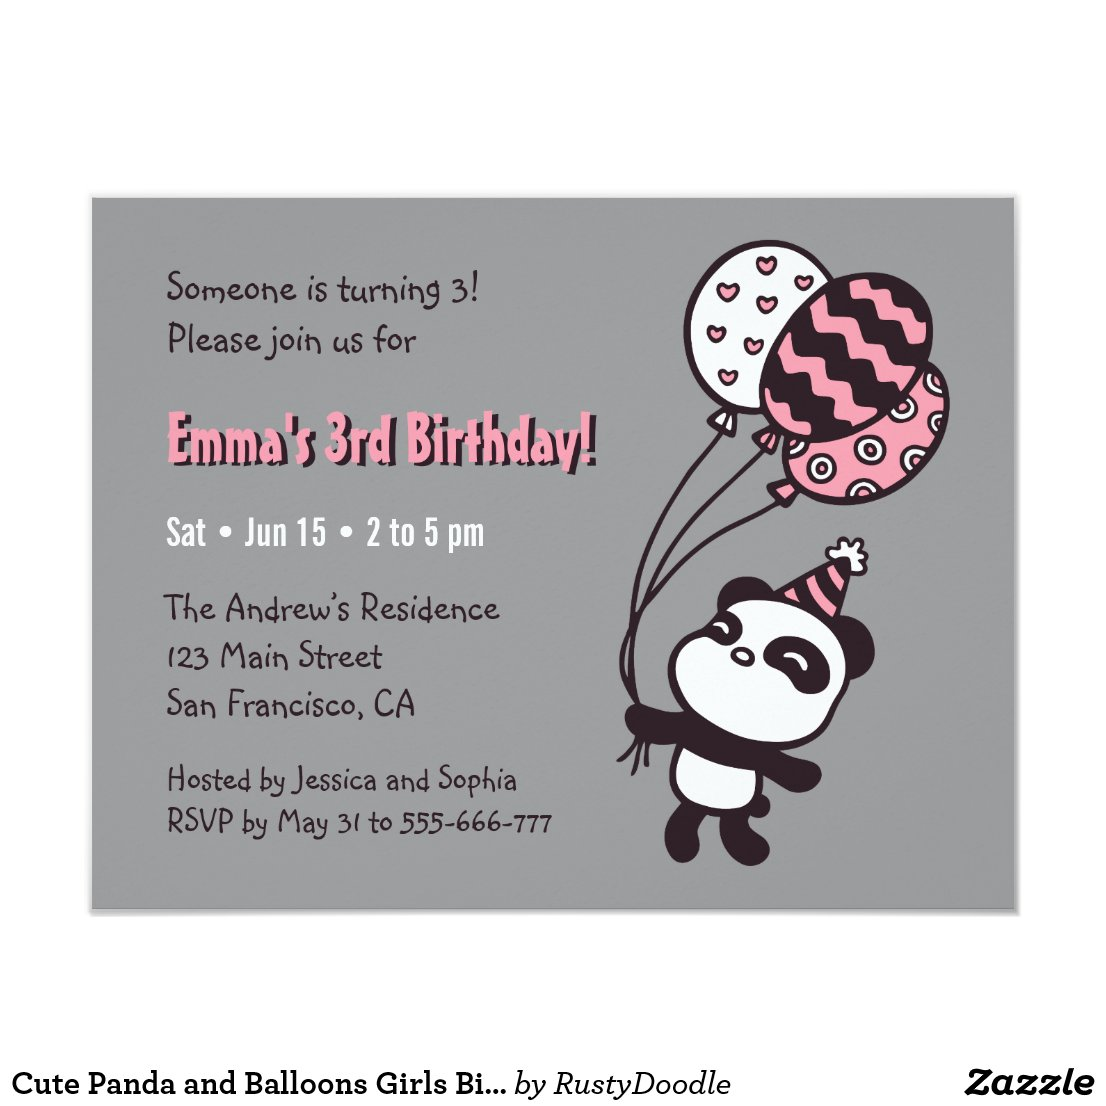 Cute Panda and Balloons Girls Birthday Party Card